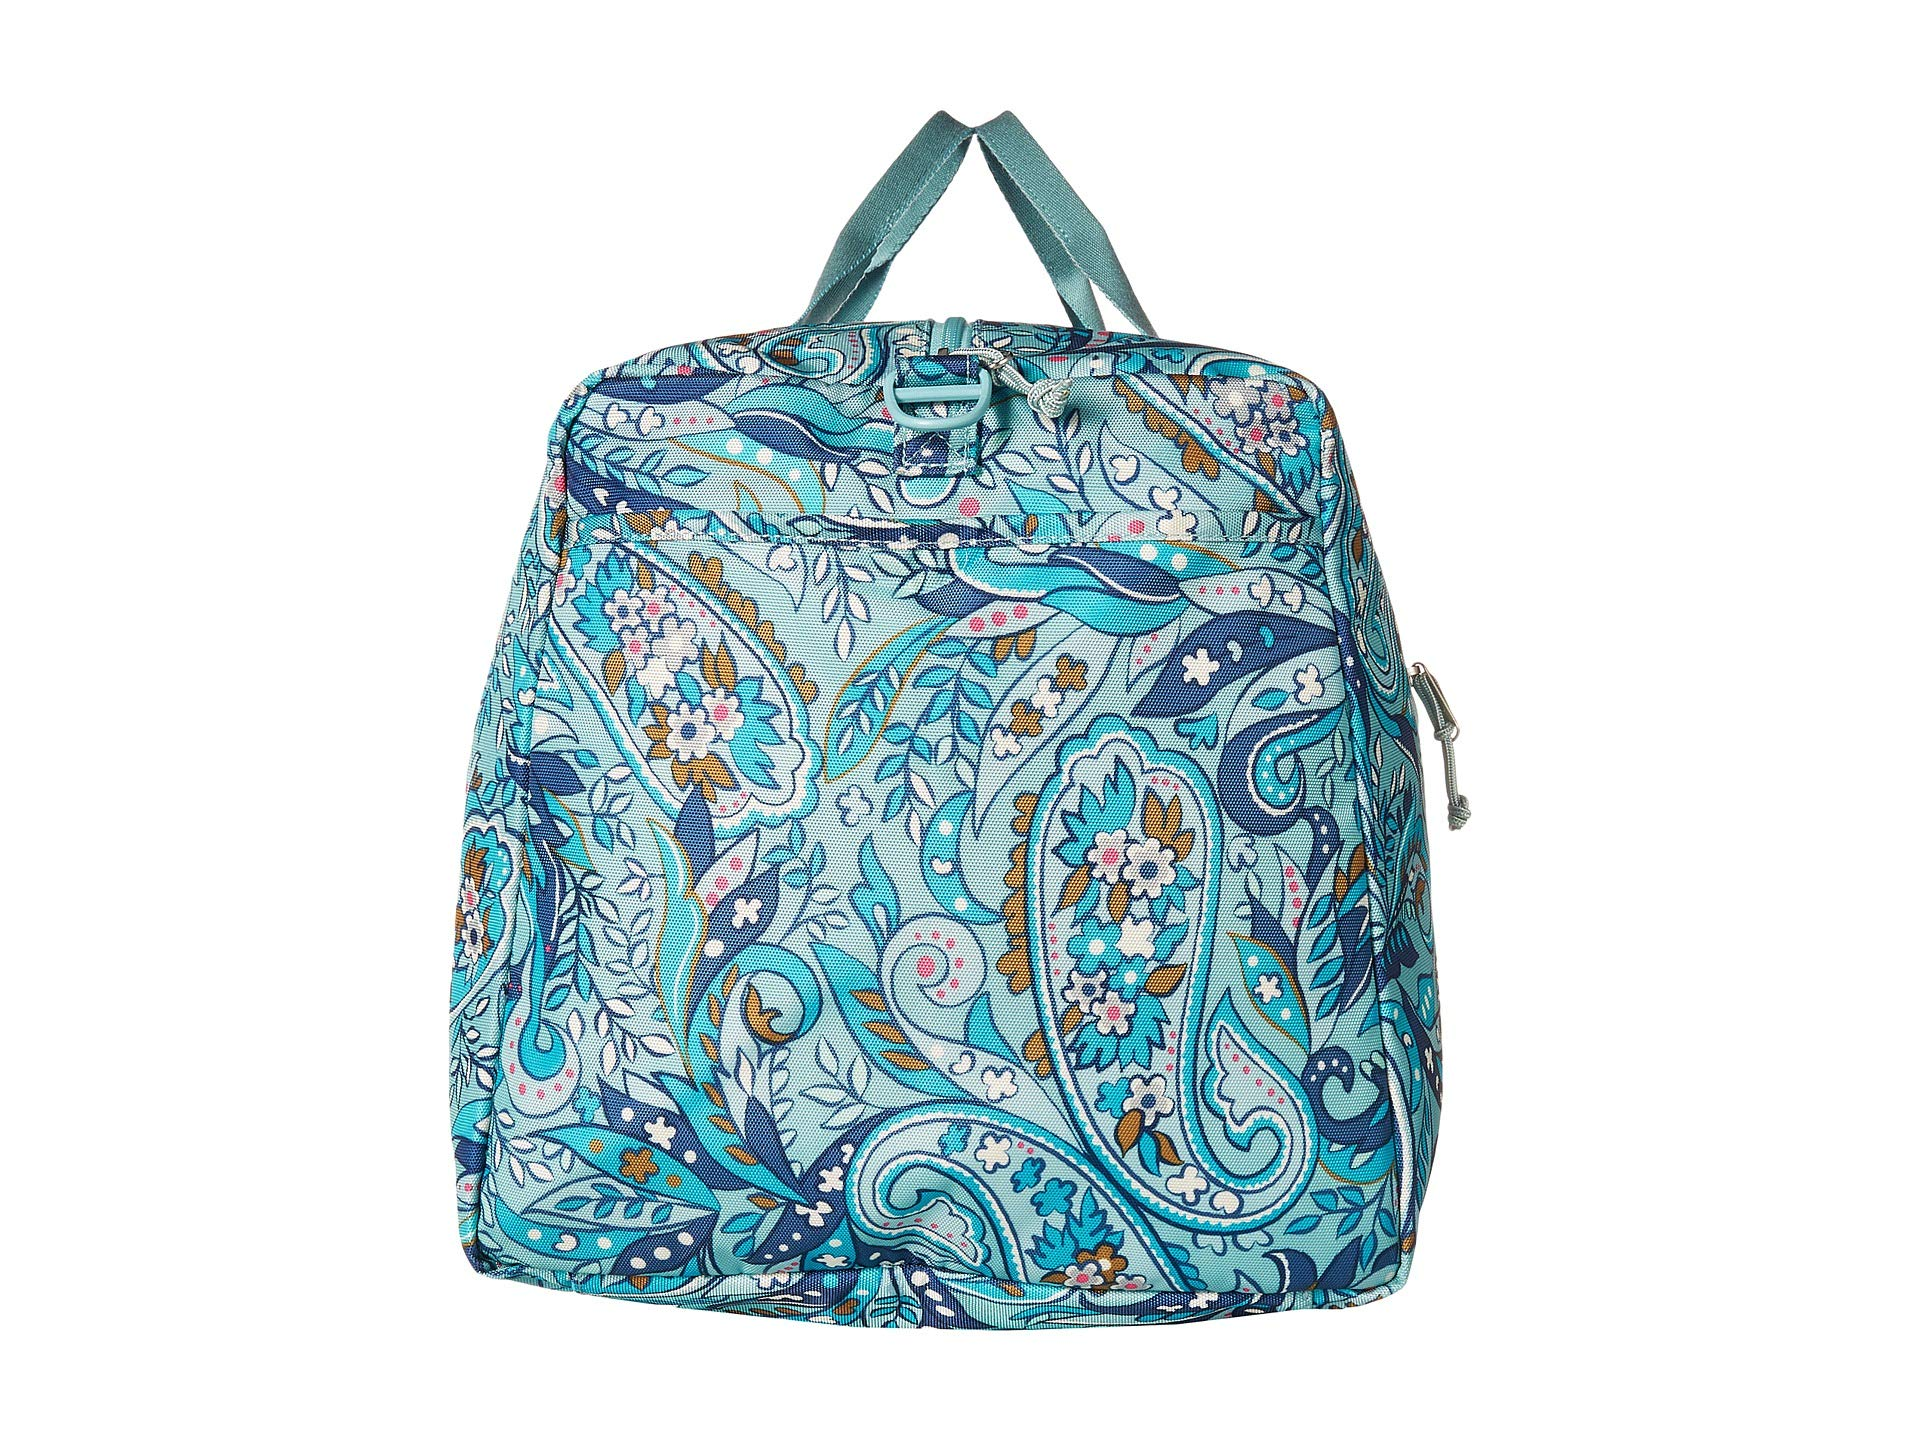 Lighten Duffel Travel Large Paisley Bradley Vera Daisy Up 4Ucvzp4nW